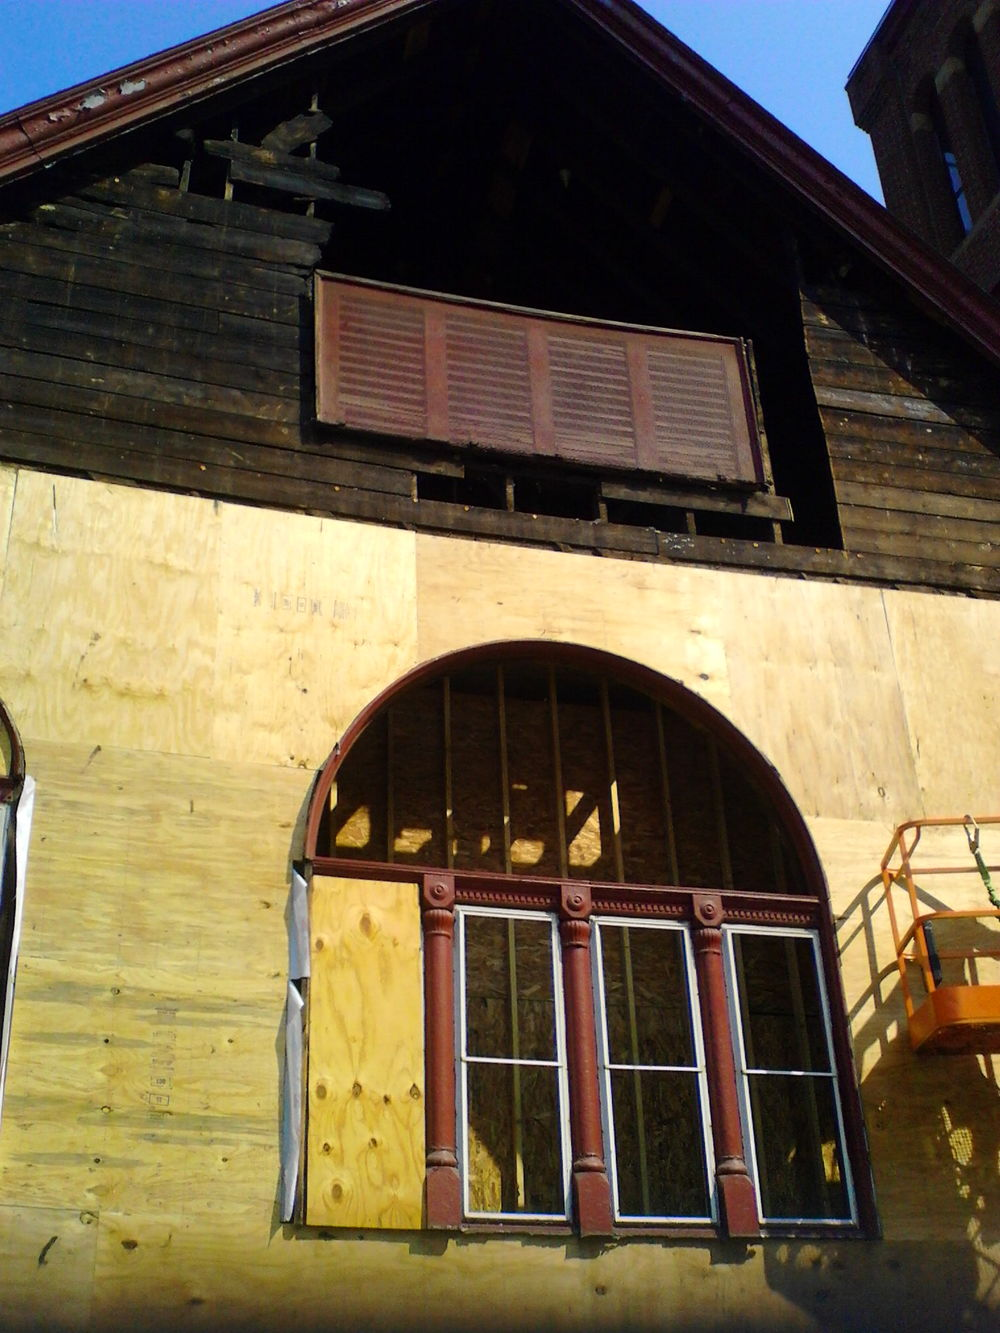 Work progressing on the sanctuary (exterior view).